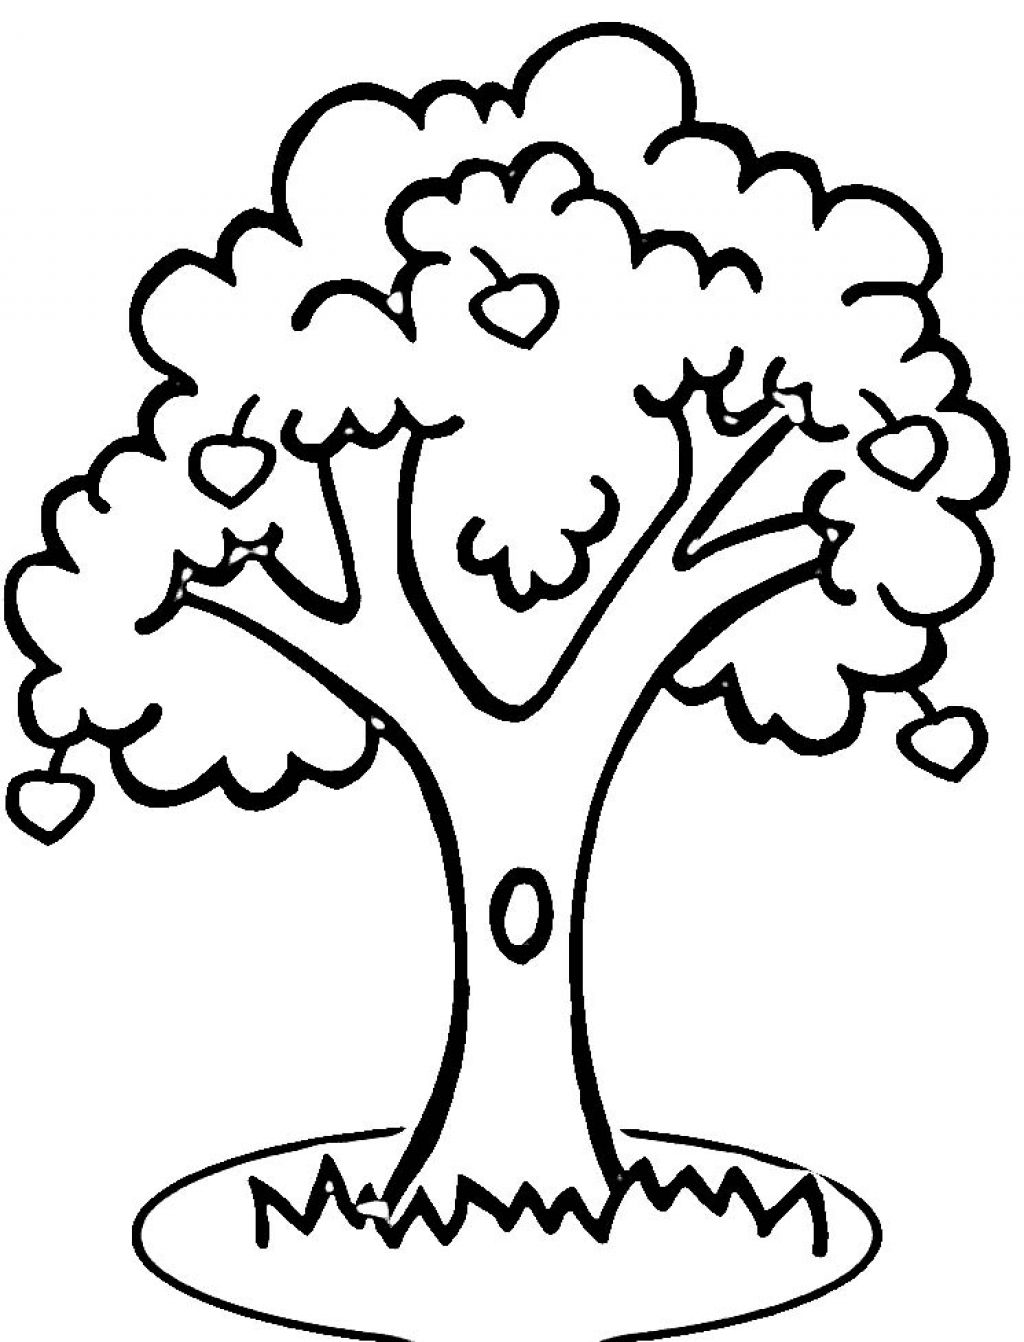 Apple Computer Coloring Pages : Colouring page of tree clipart best